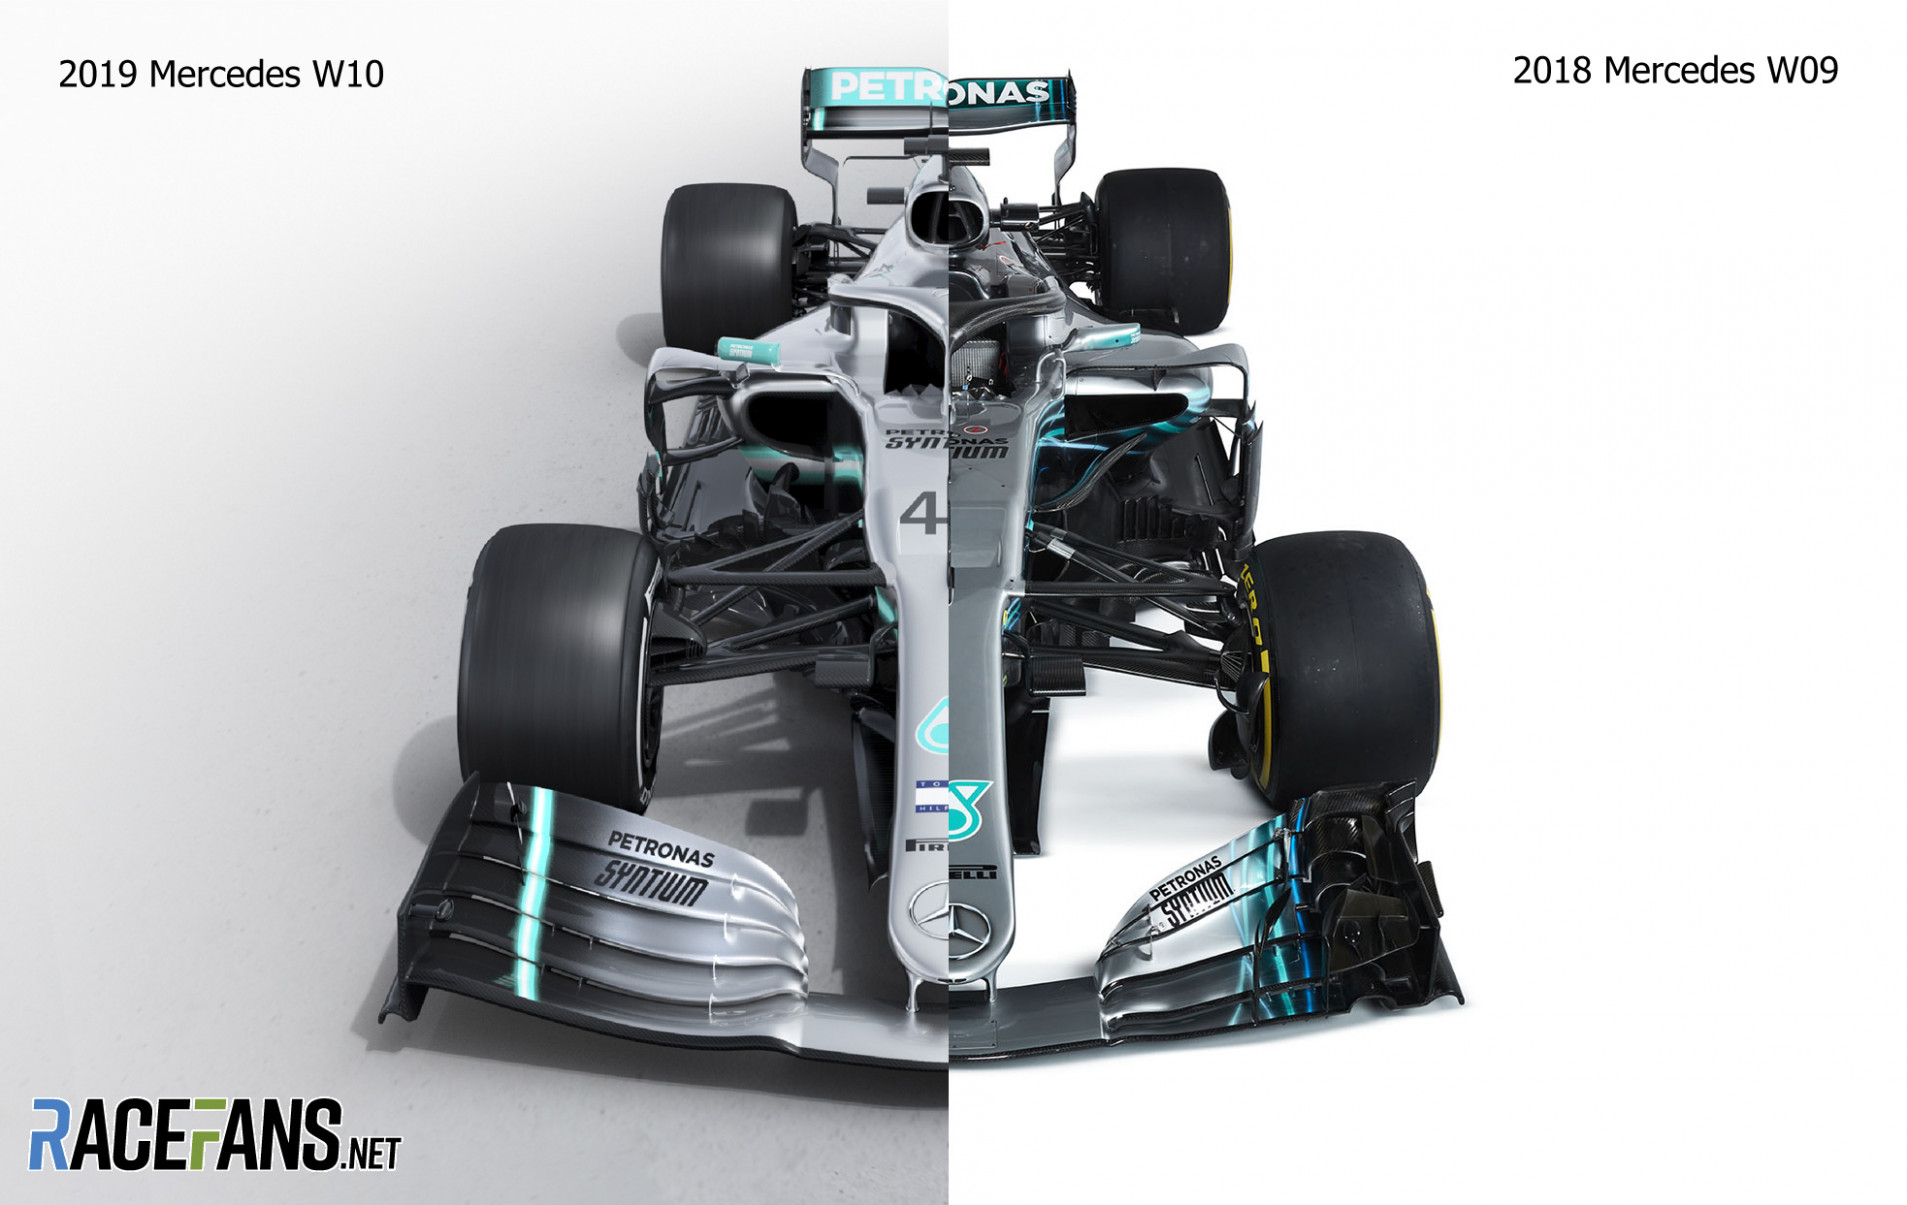 Interactive: Compare Mercedes' new W6 and last year's car - RaceFans